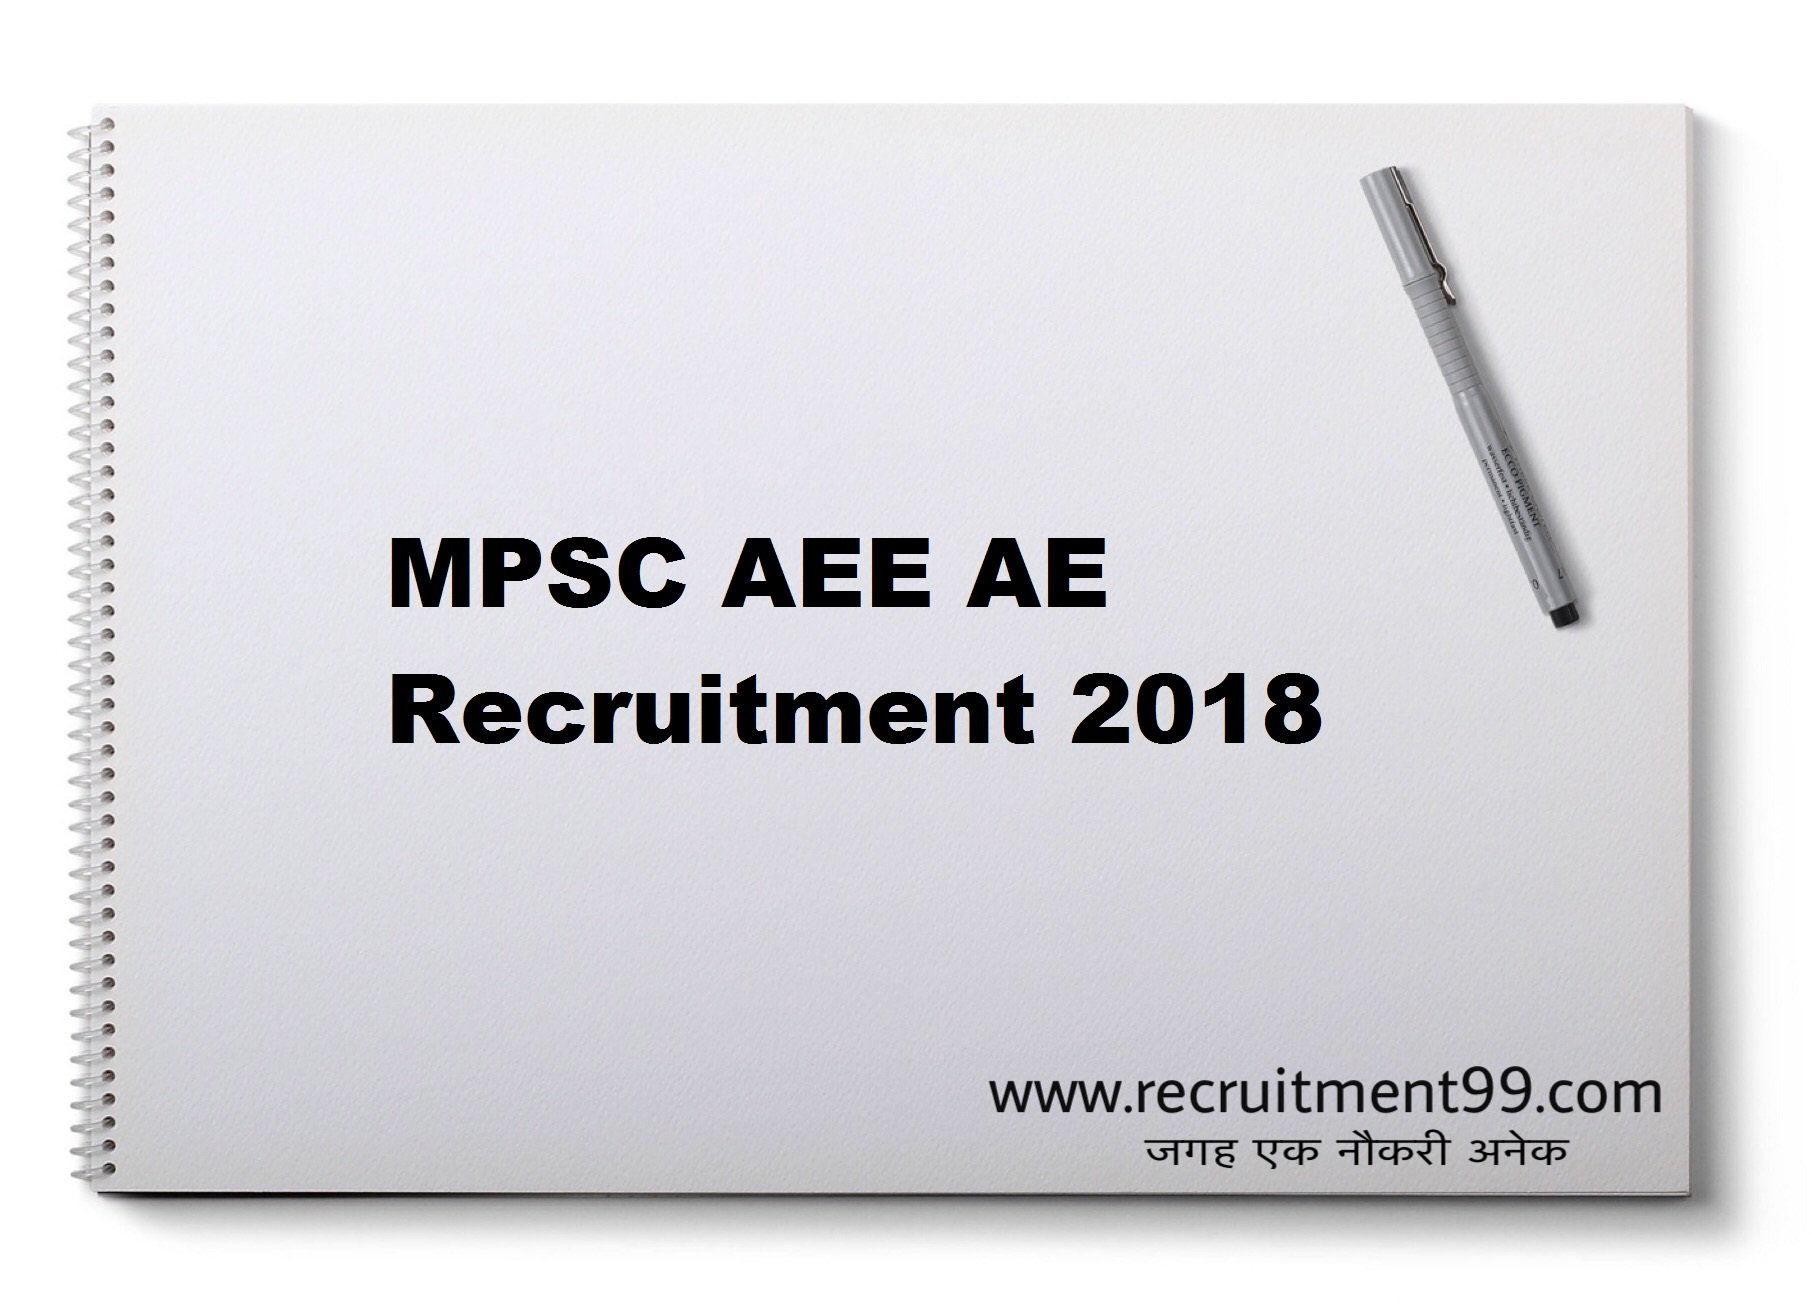 MPSC AEE AE Recruitment Admit Card Result 2018